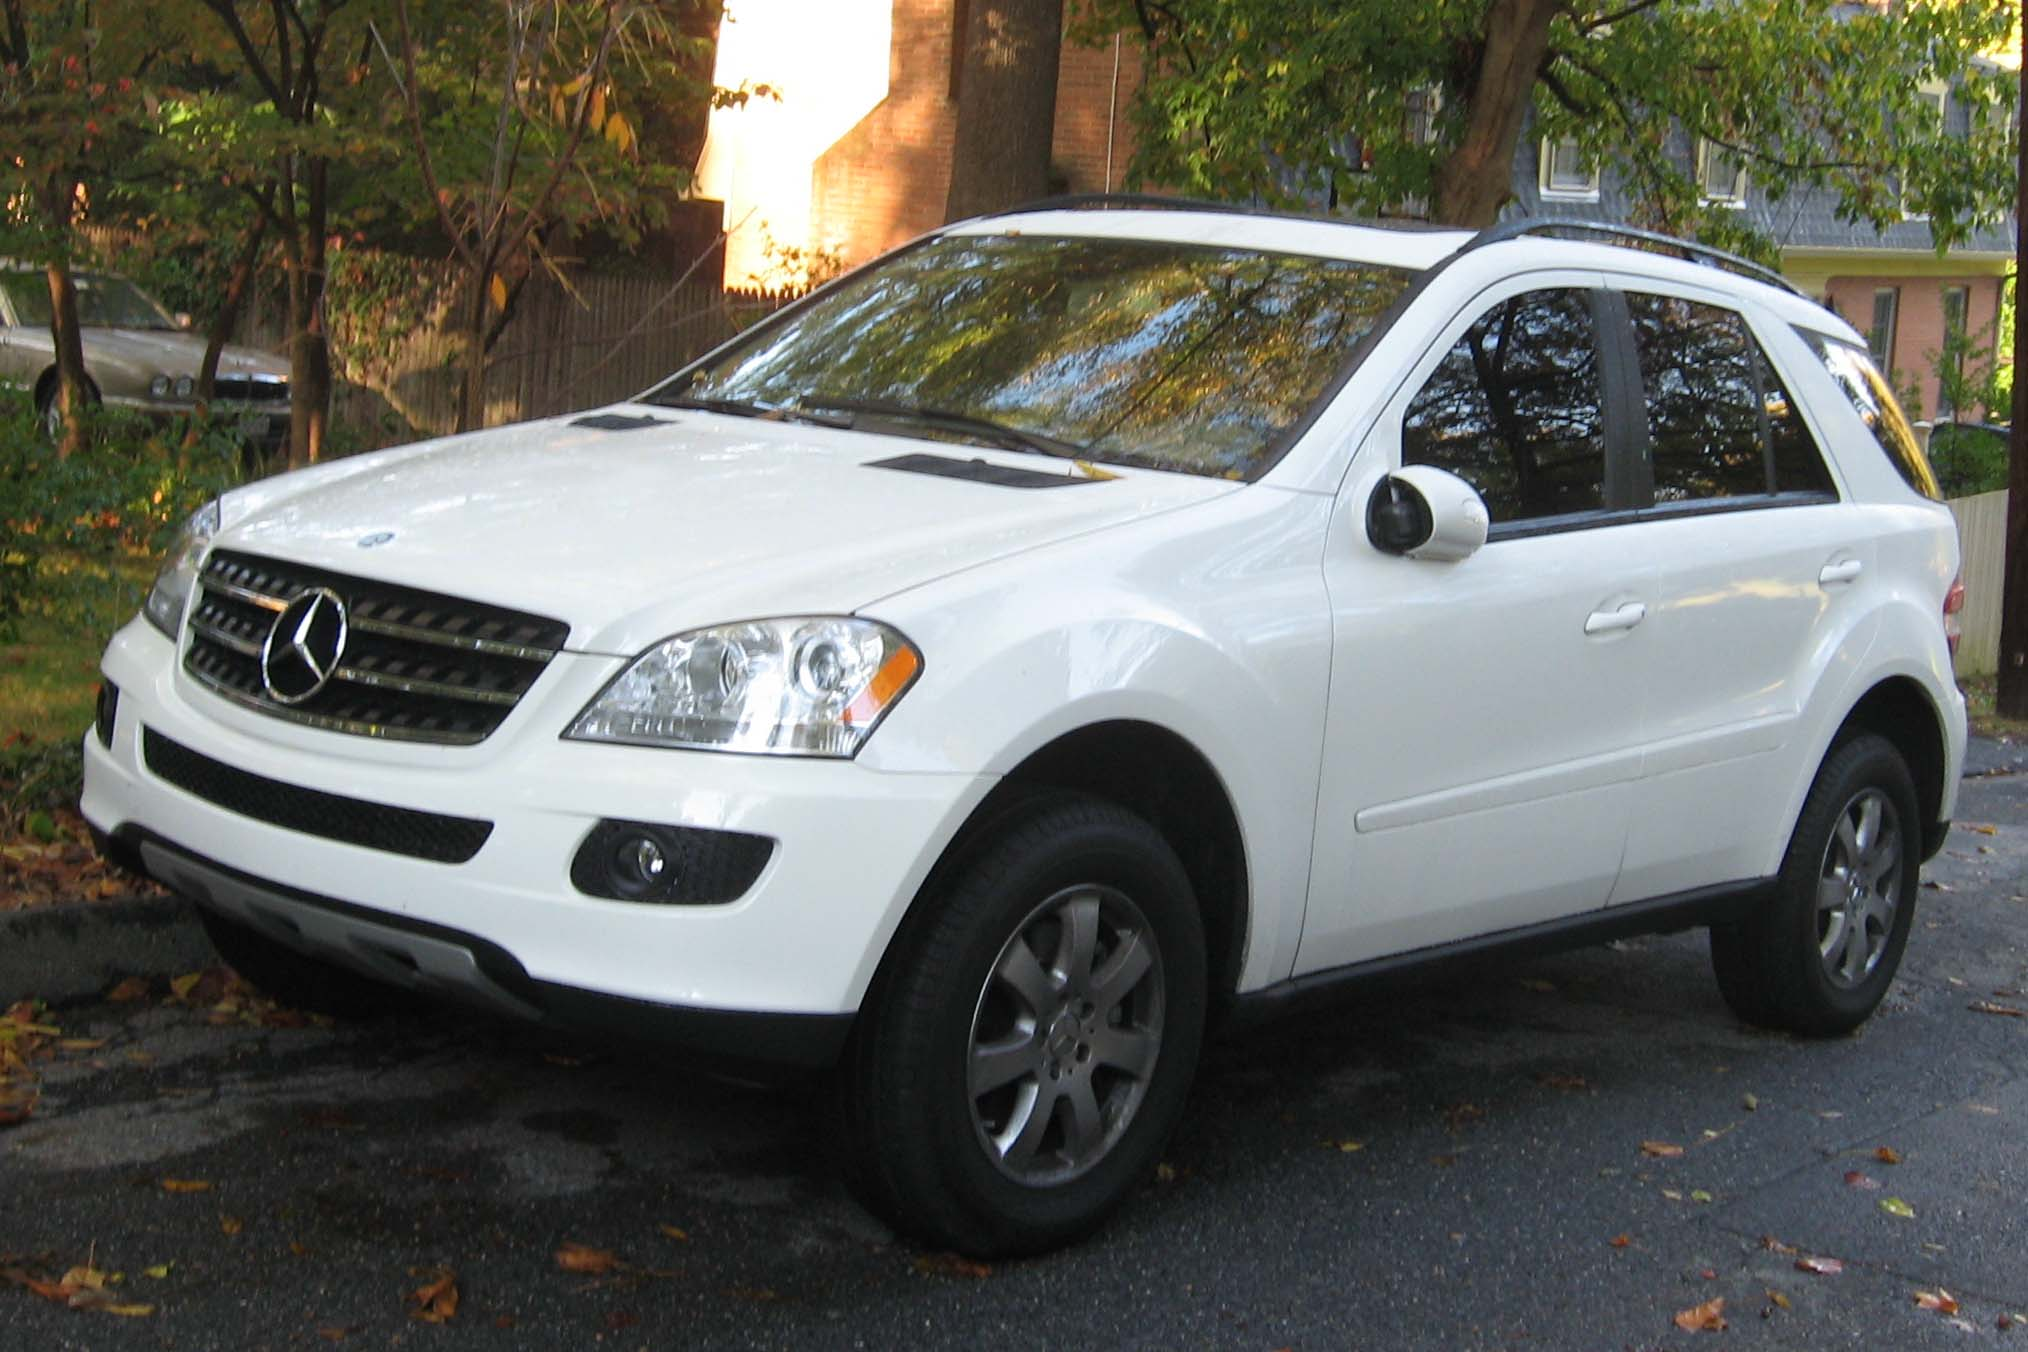 Mercedes benz ml 350 technical details history photos on for Mercedes benz of atlanta parts